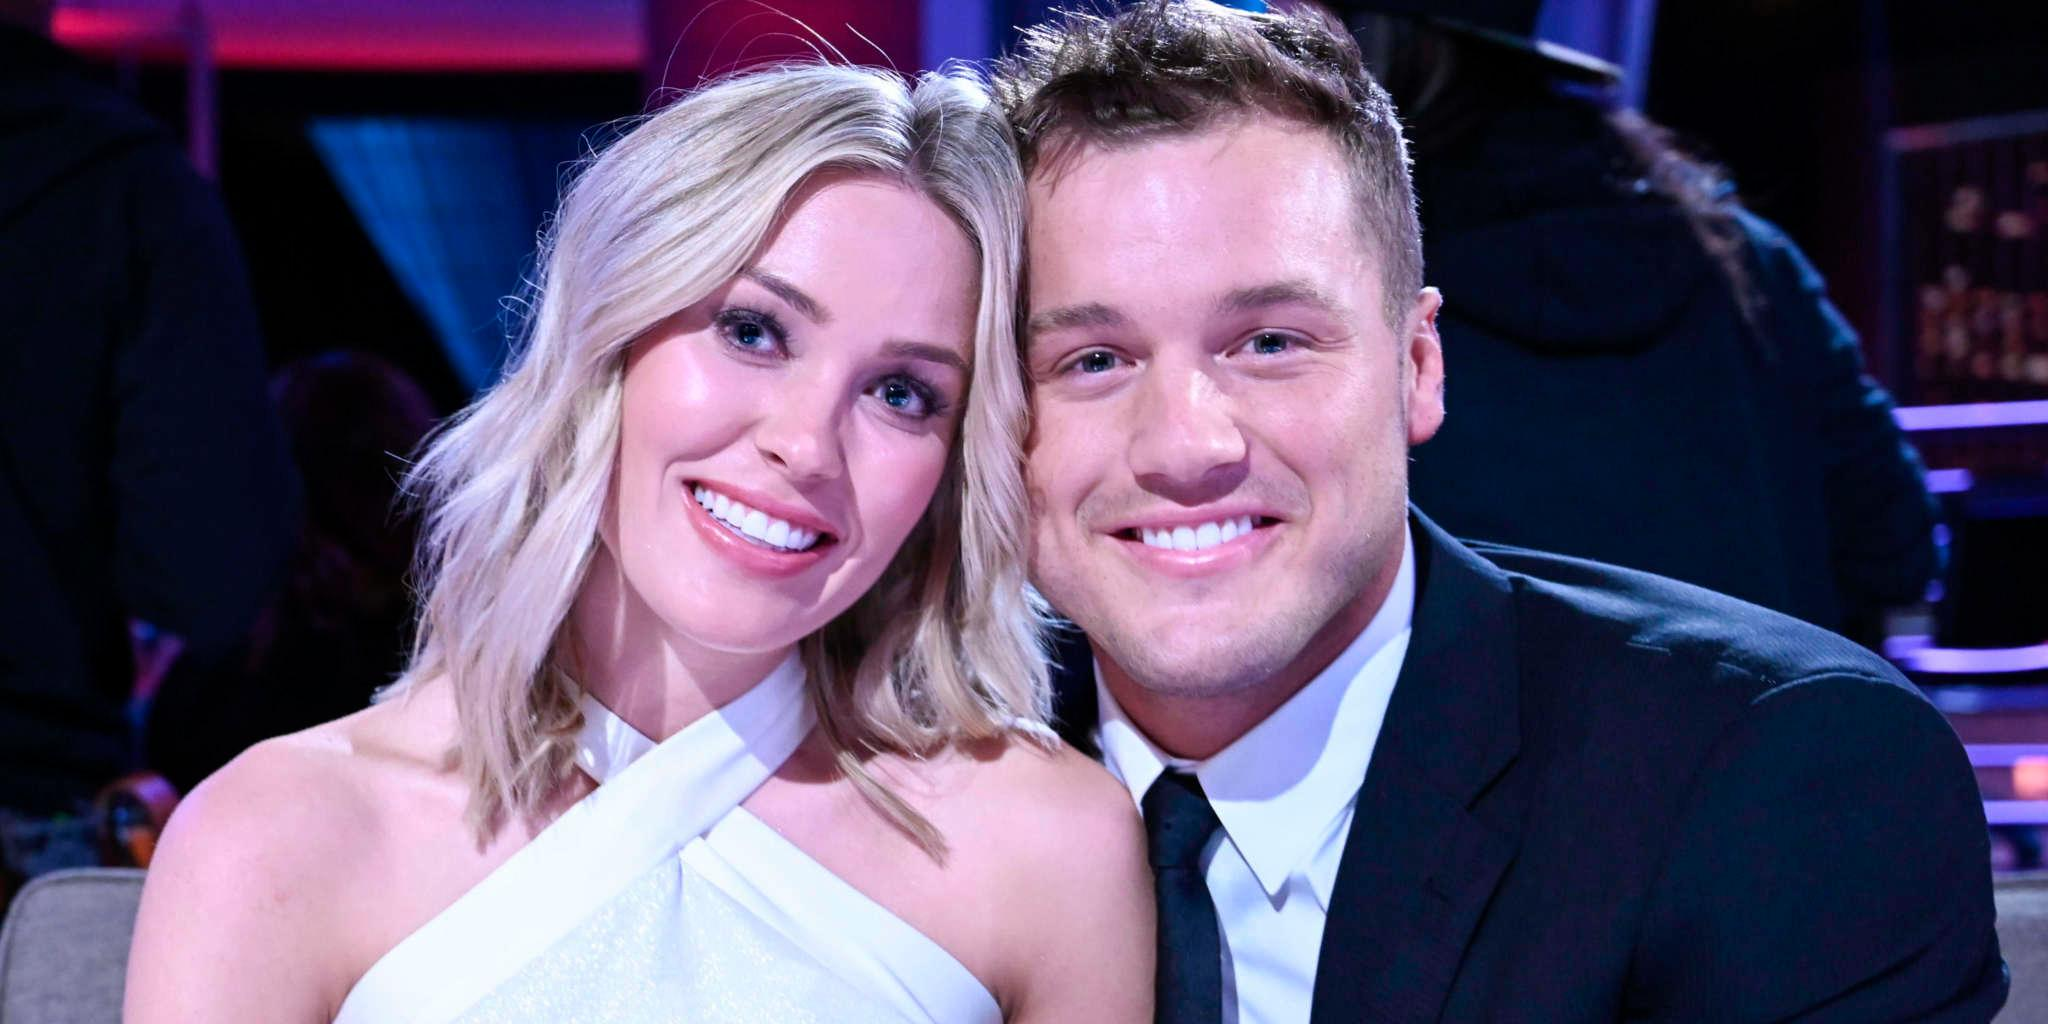 Colton Underwood And Cassie Randolph Are Over - Check Out Their Announcements!